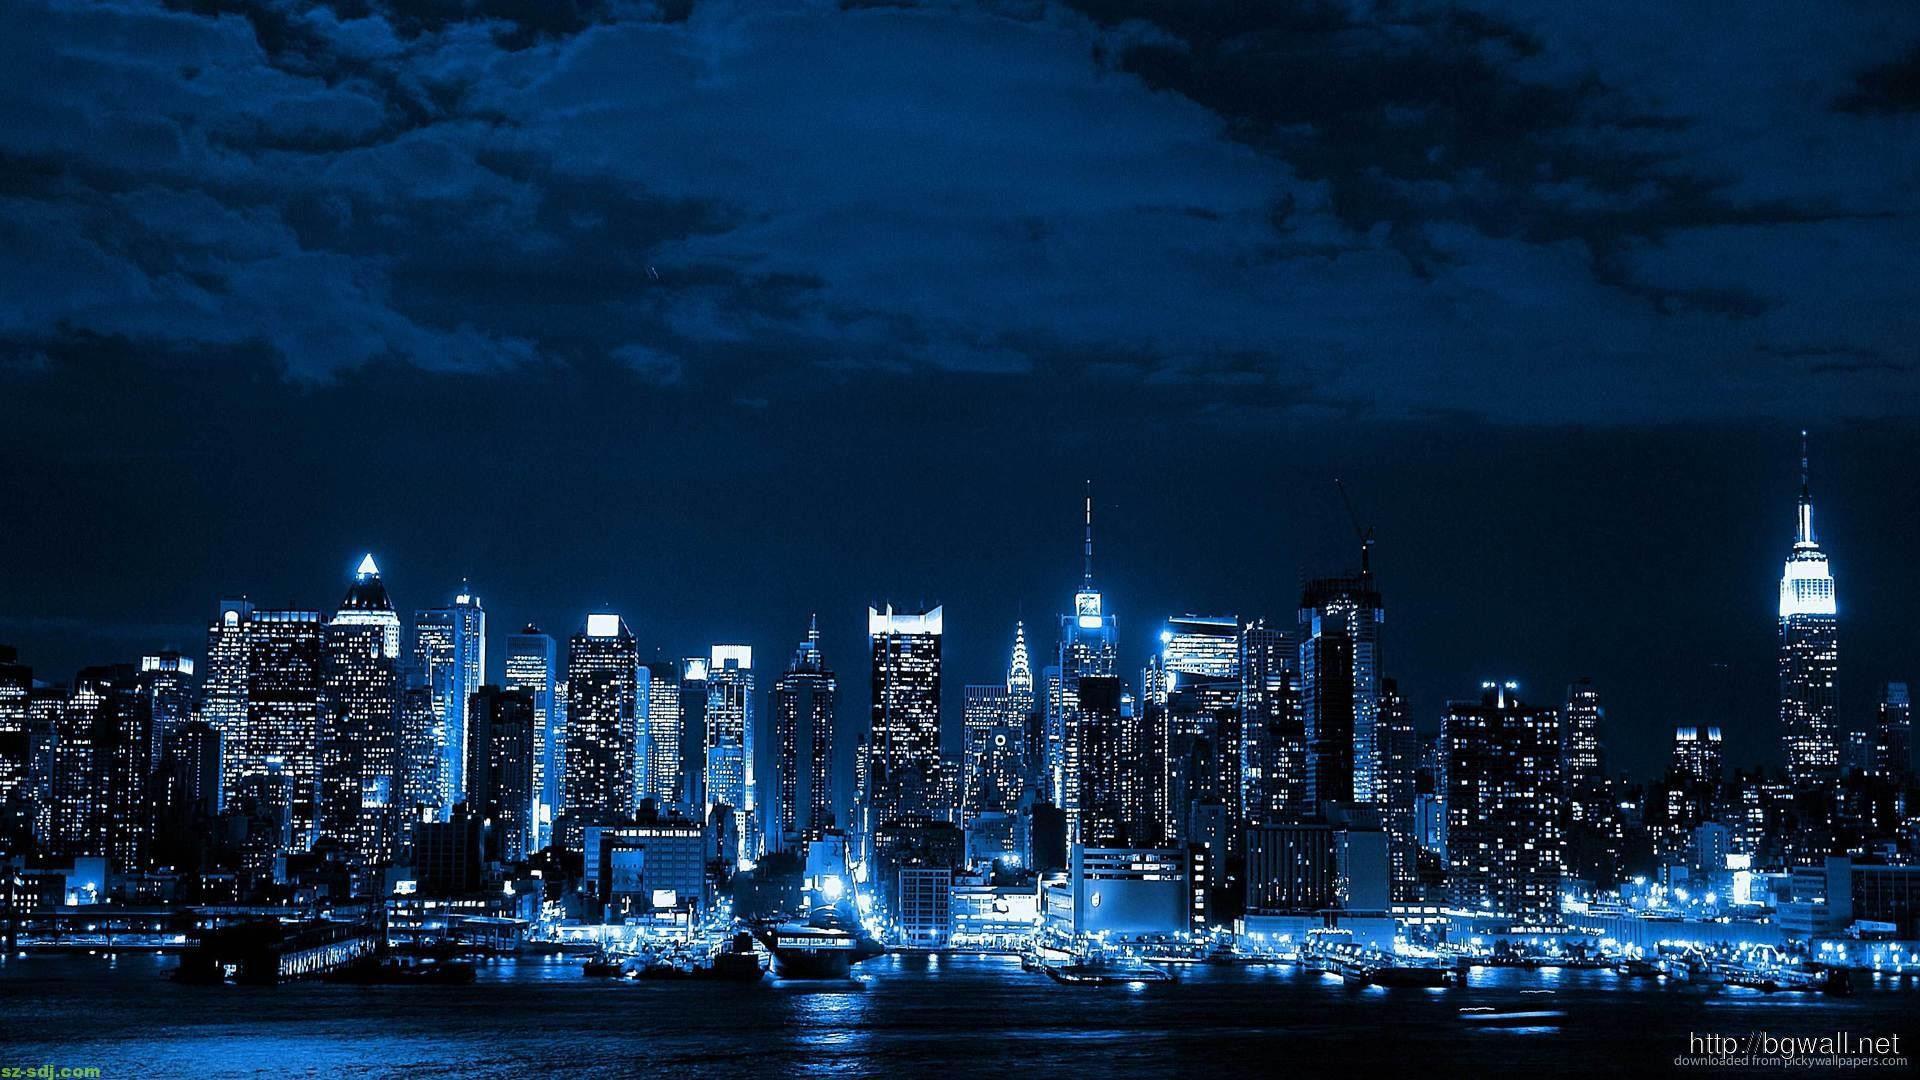 Night City Wallpapers Mobile | Landscape Wallpapers | Pinterest | City  wallpaper, Night city and Wallpaper